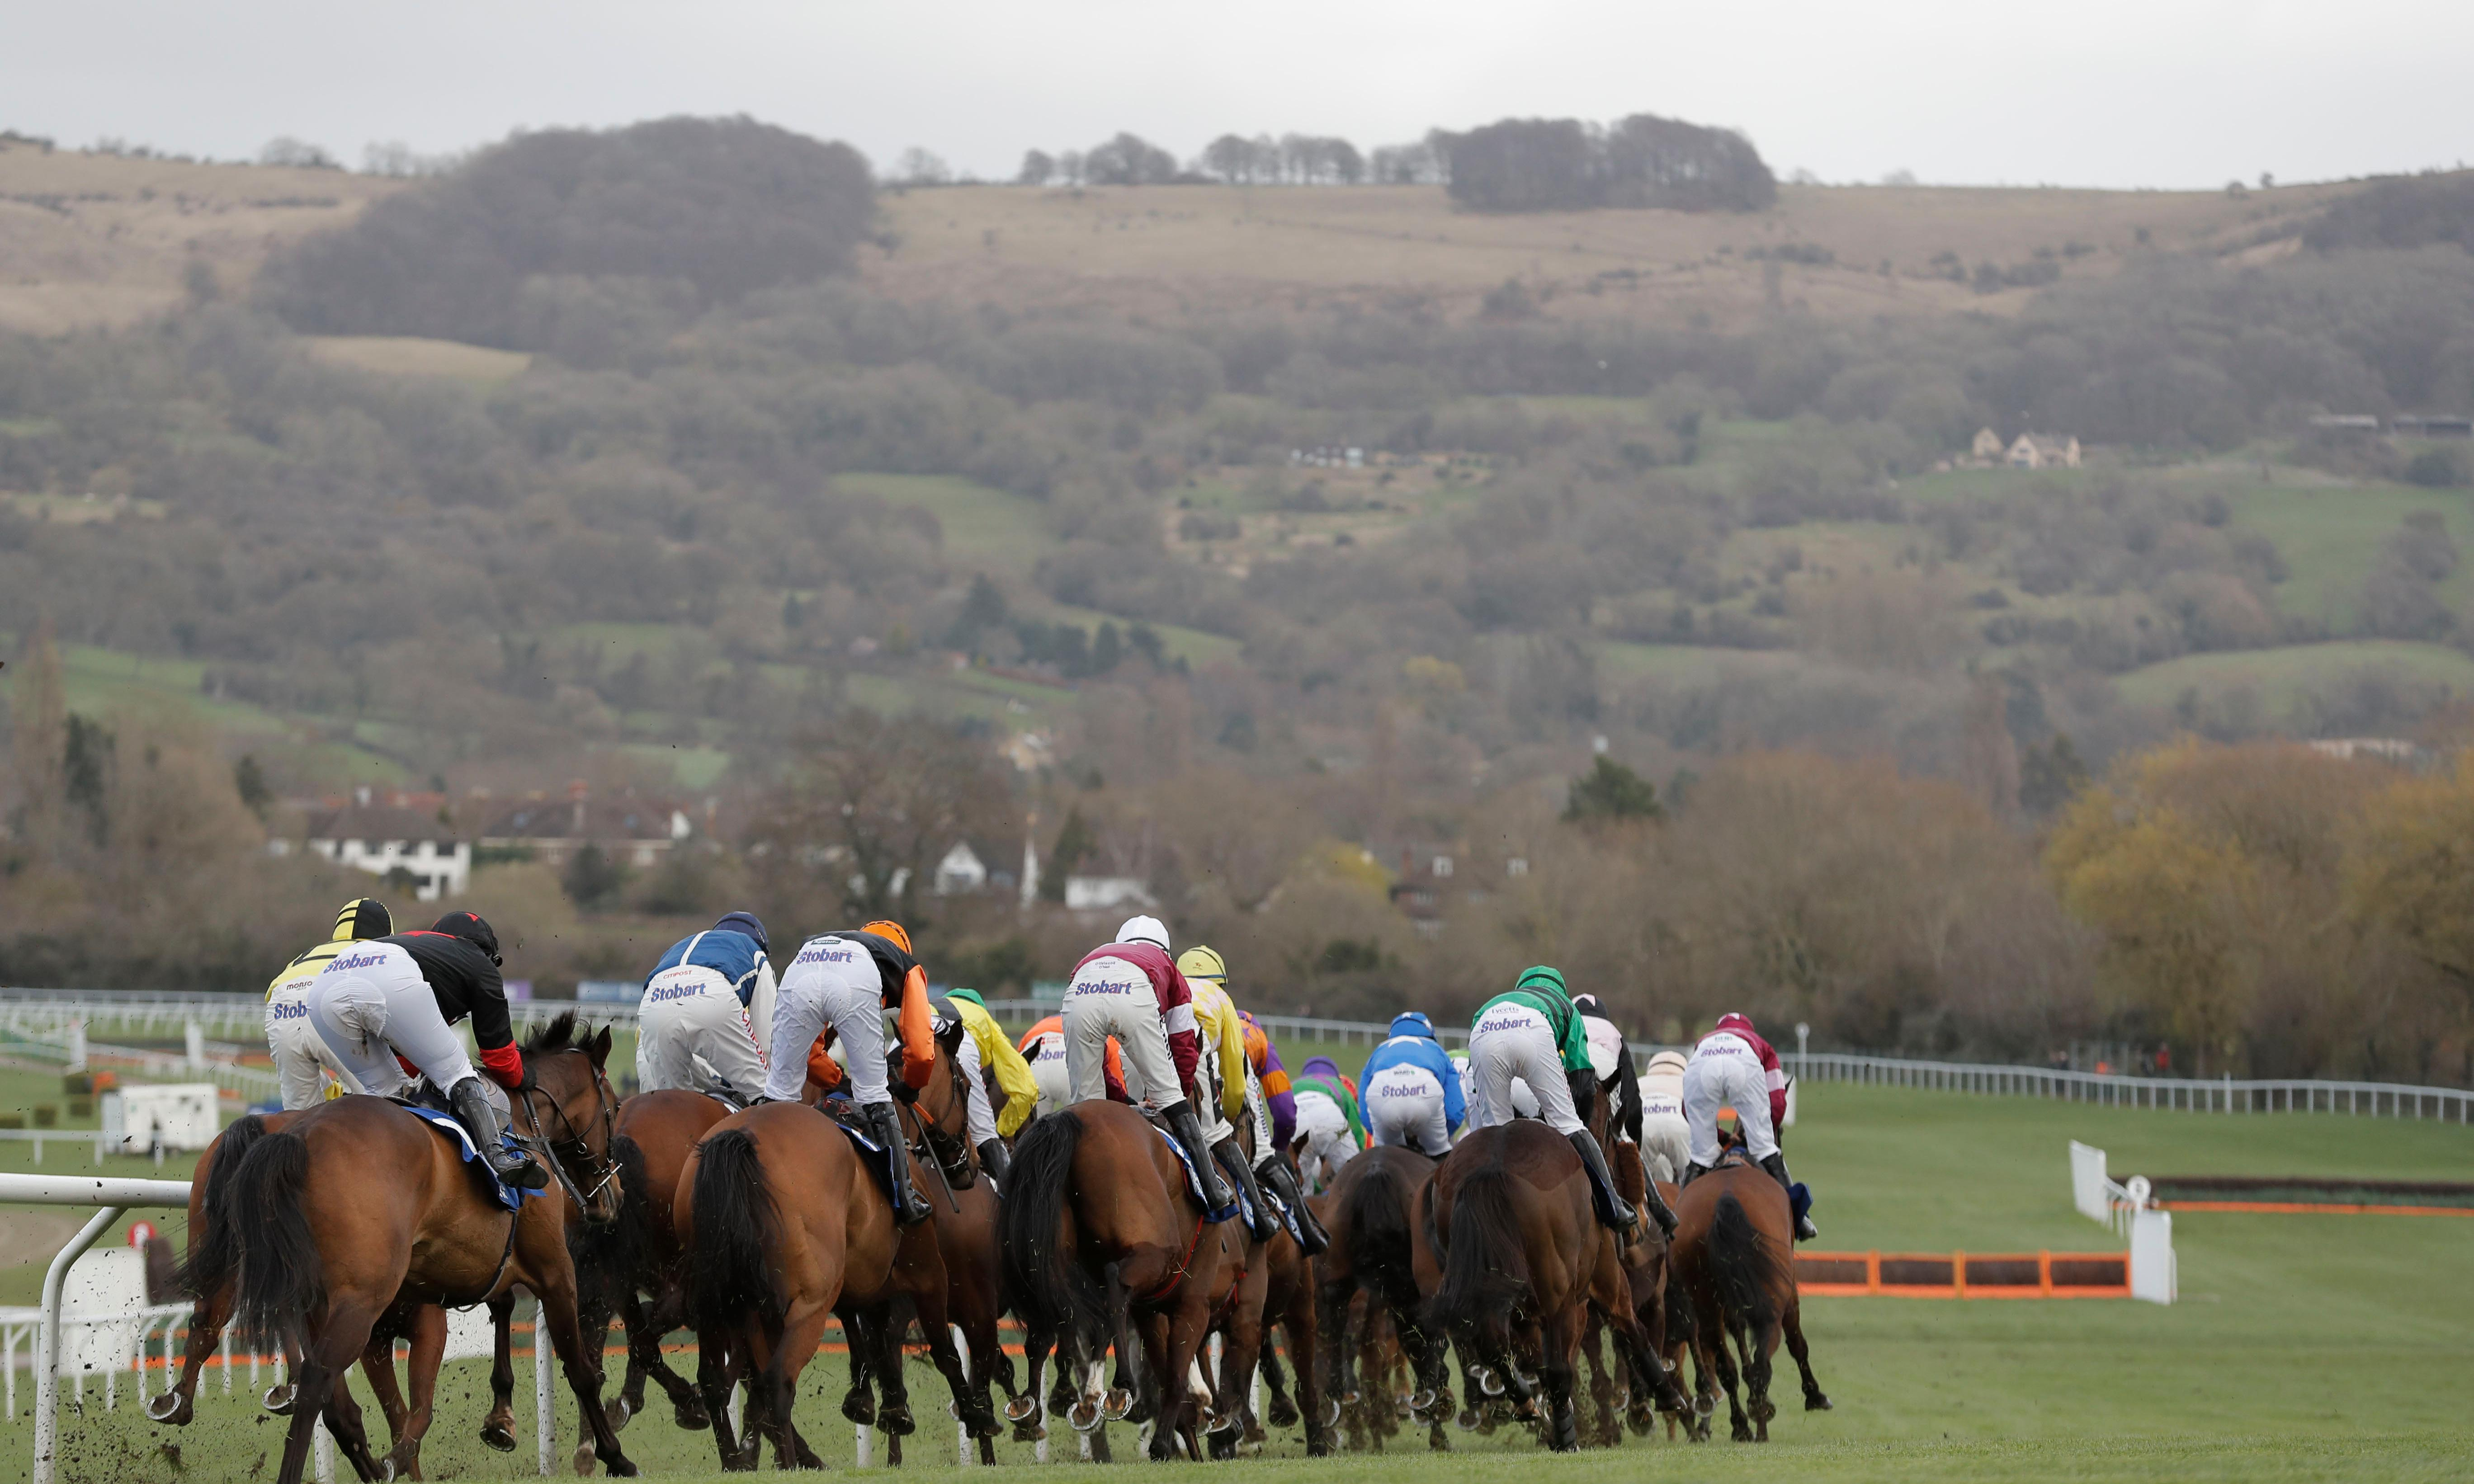 Two fatalities on Gold Cup day dampen spirits at Cheltenham Festival